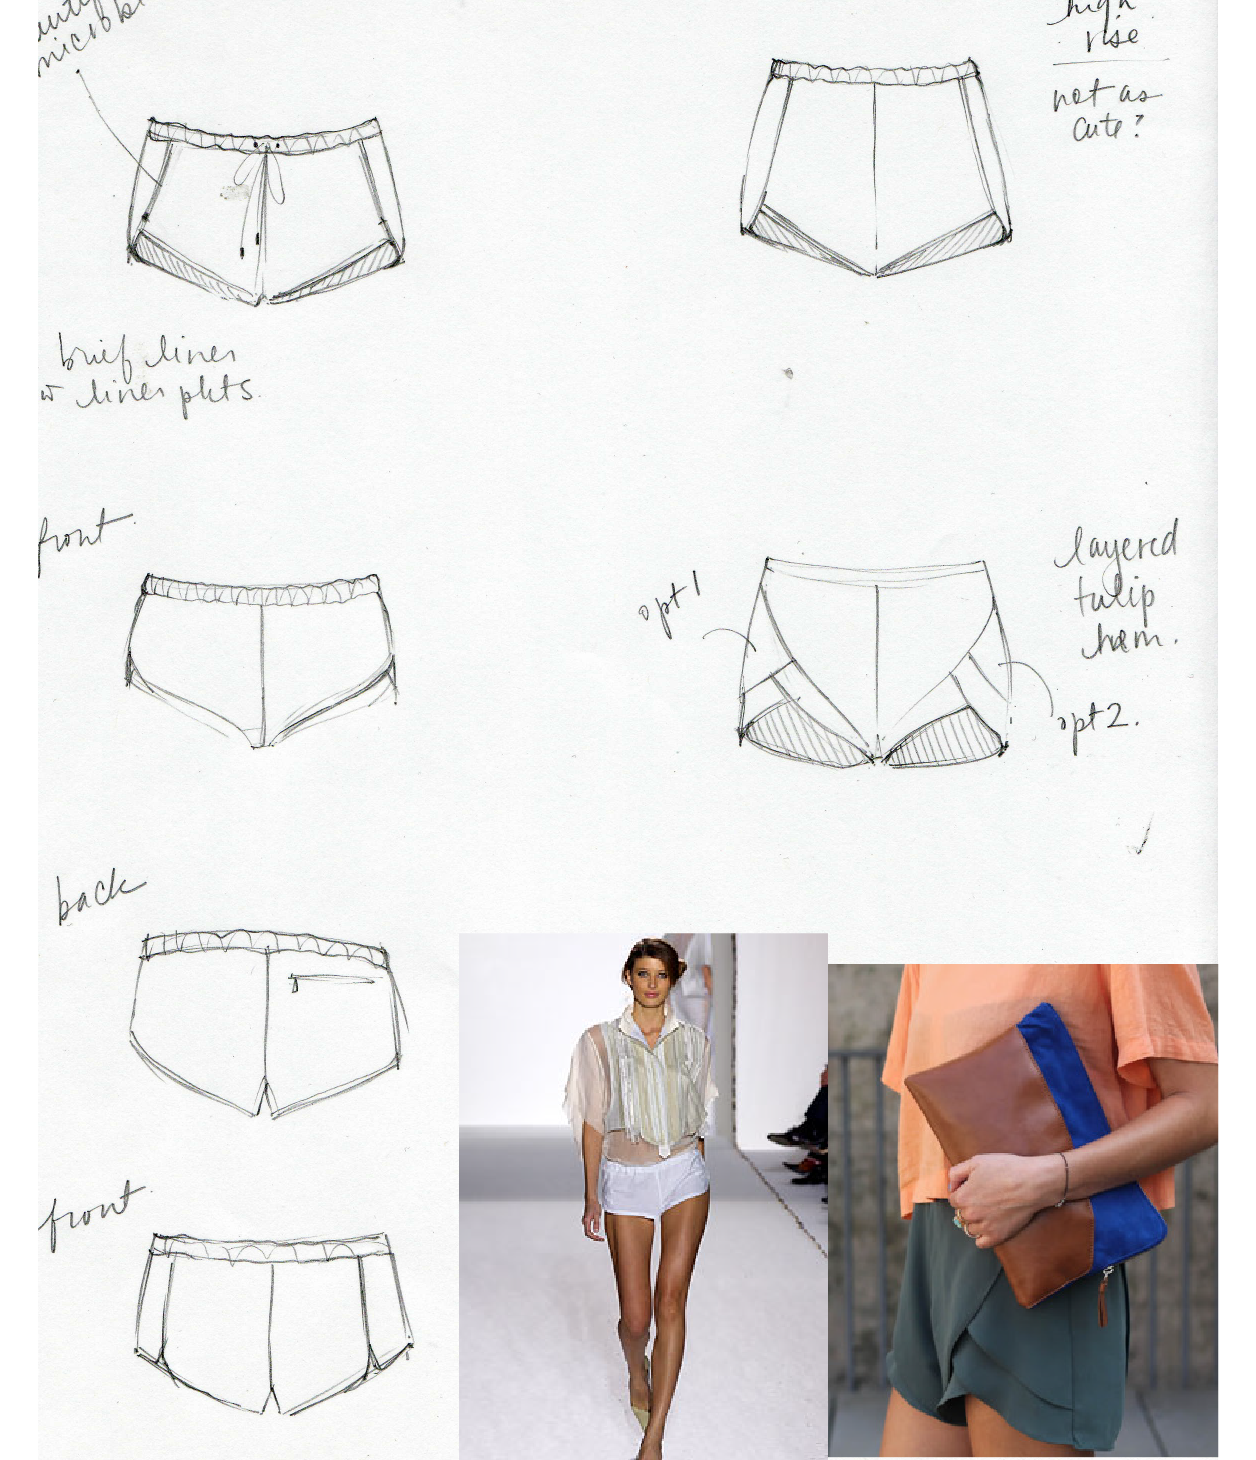 kate lab project_sketches-03.png